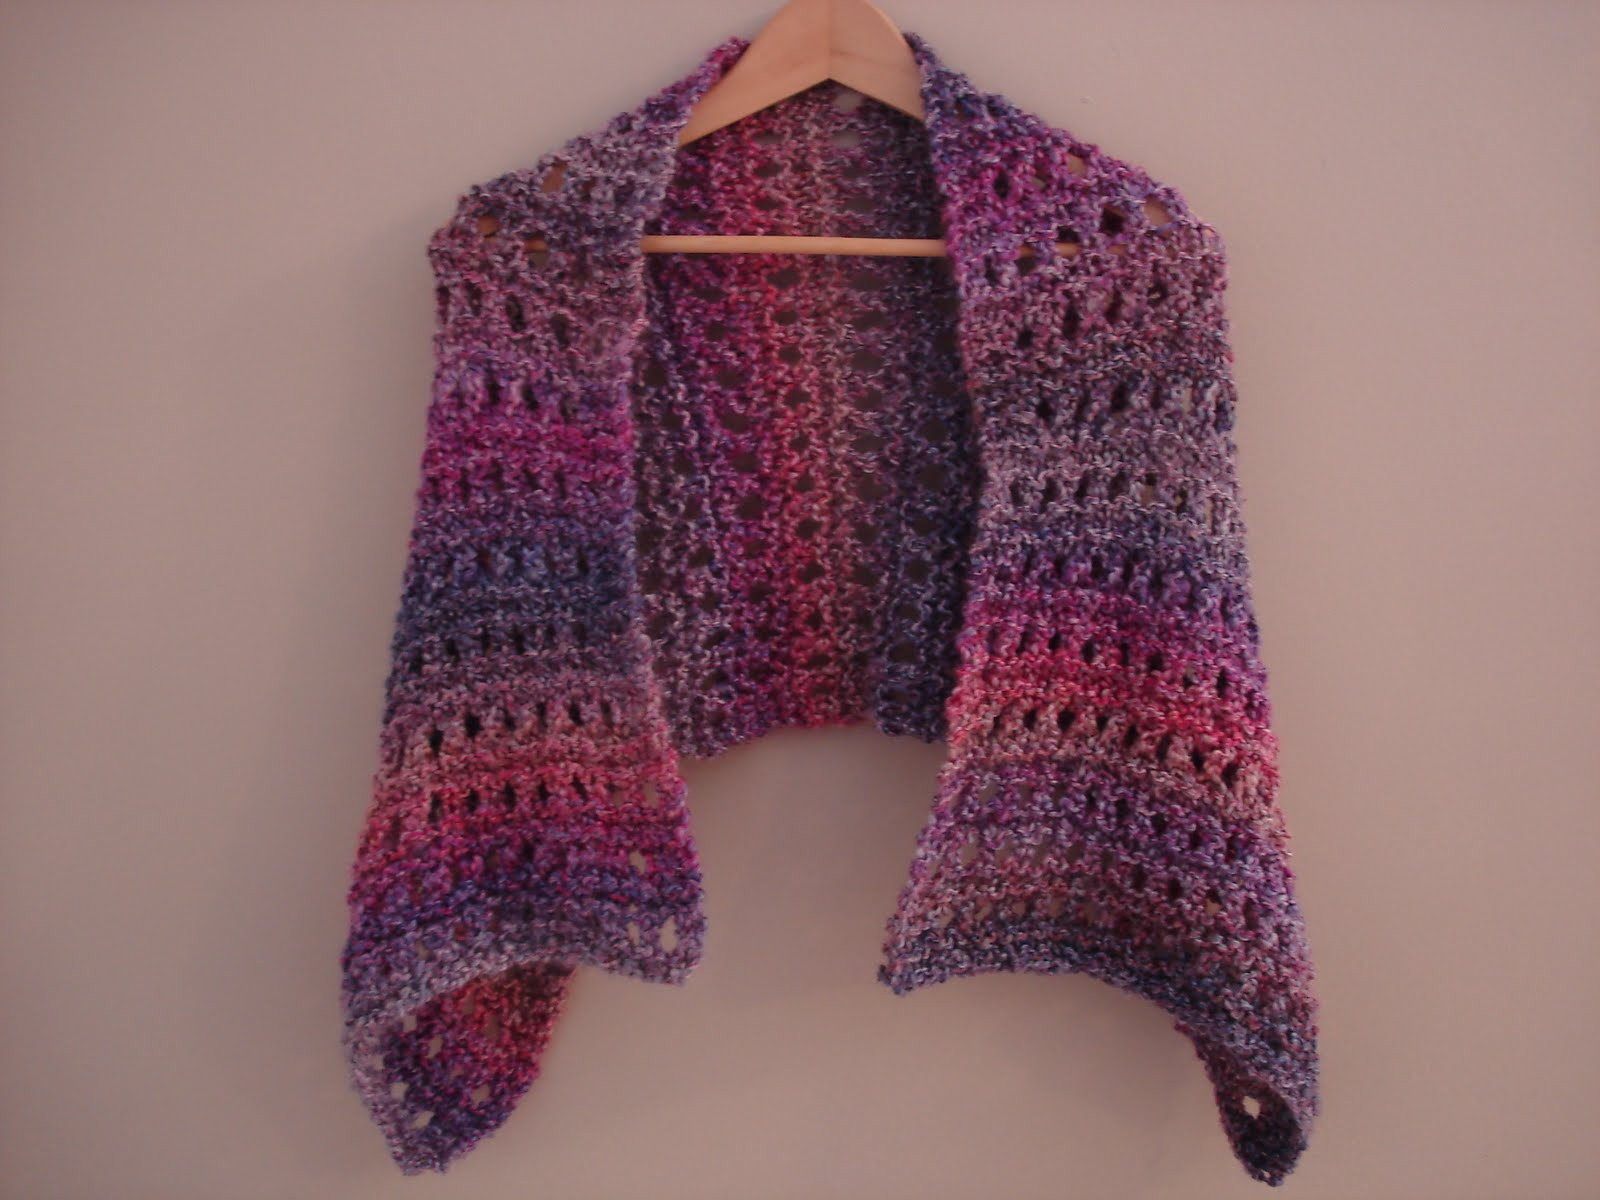 Shawl Knitting Pattern : Fiber Flux: Free Knitting Pattern...A Peaceful Shawl!